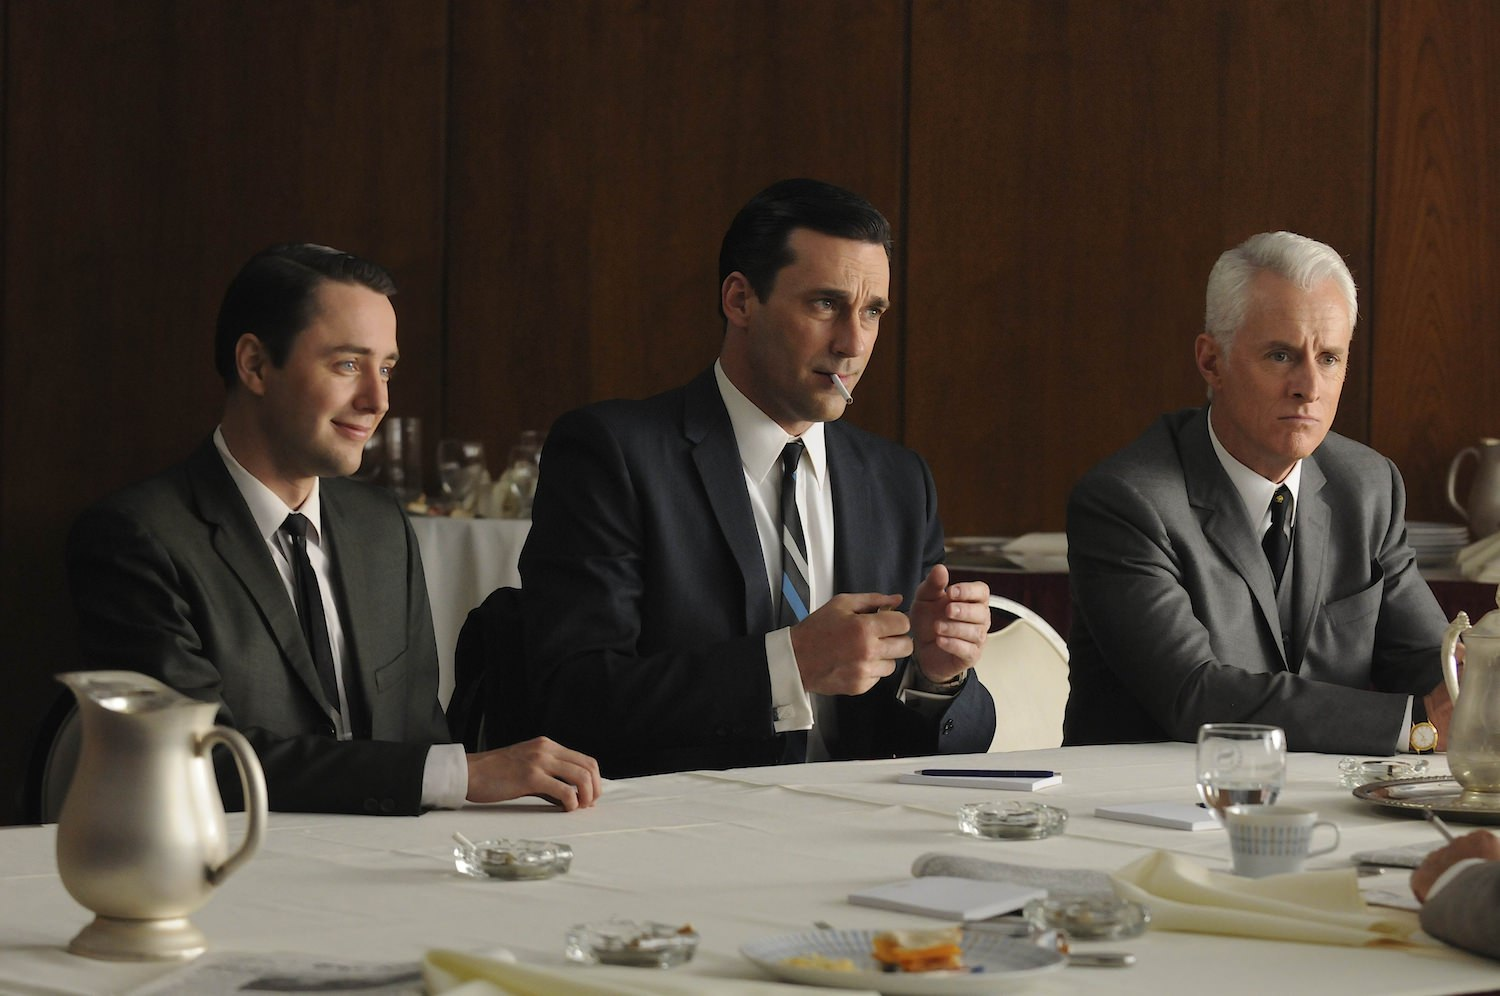 Mad men weiner vincent kartheiser jon hamm john slattery